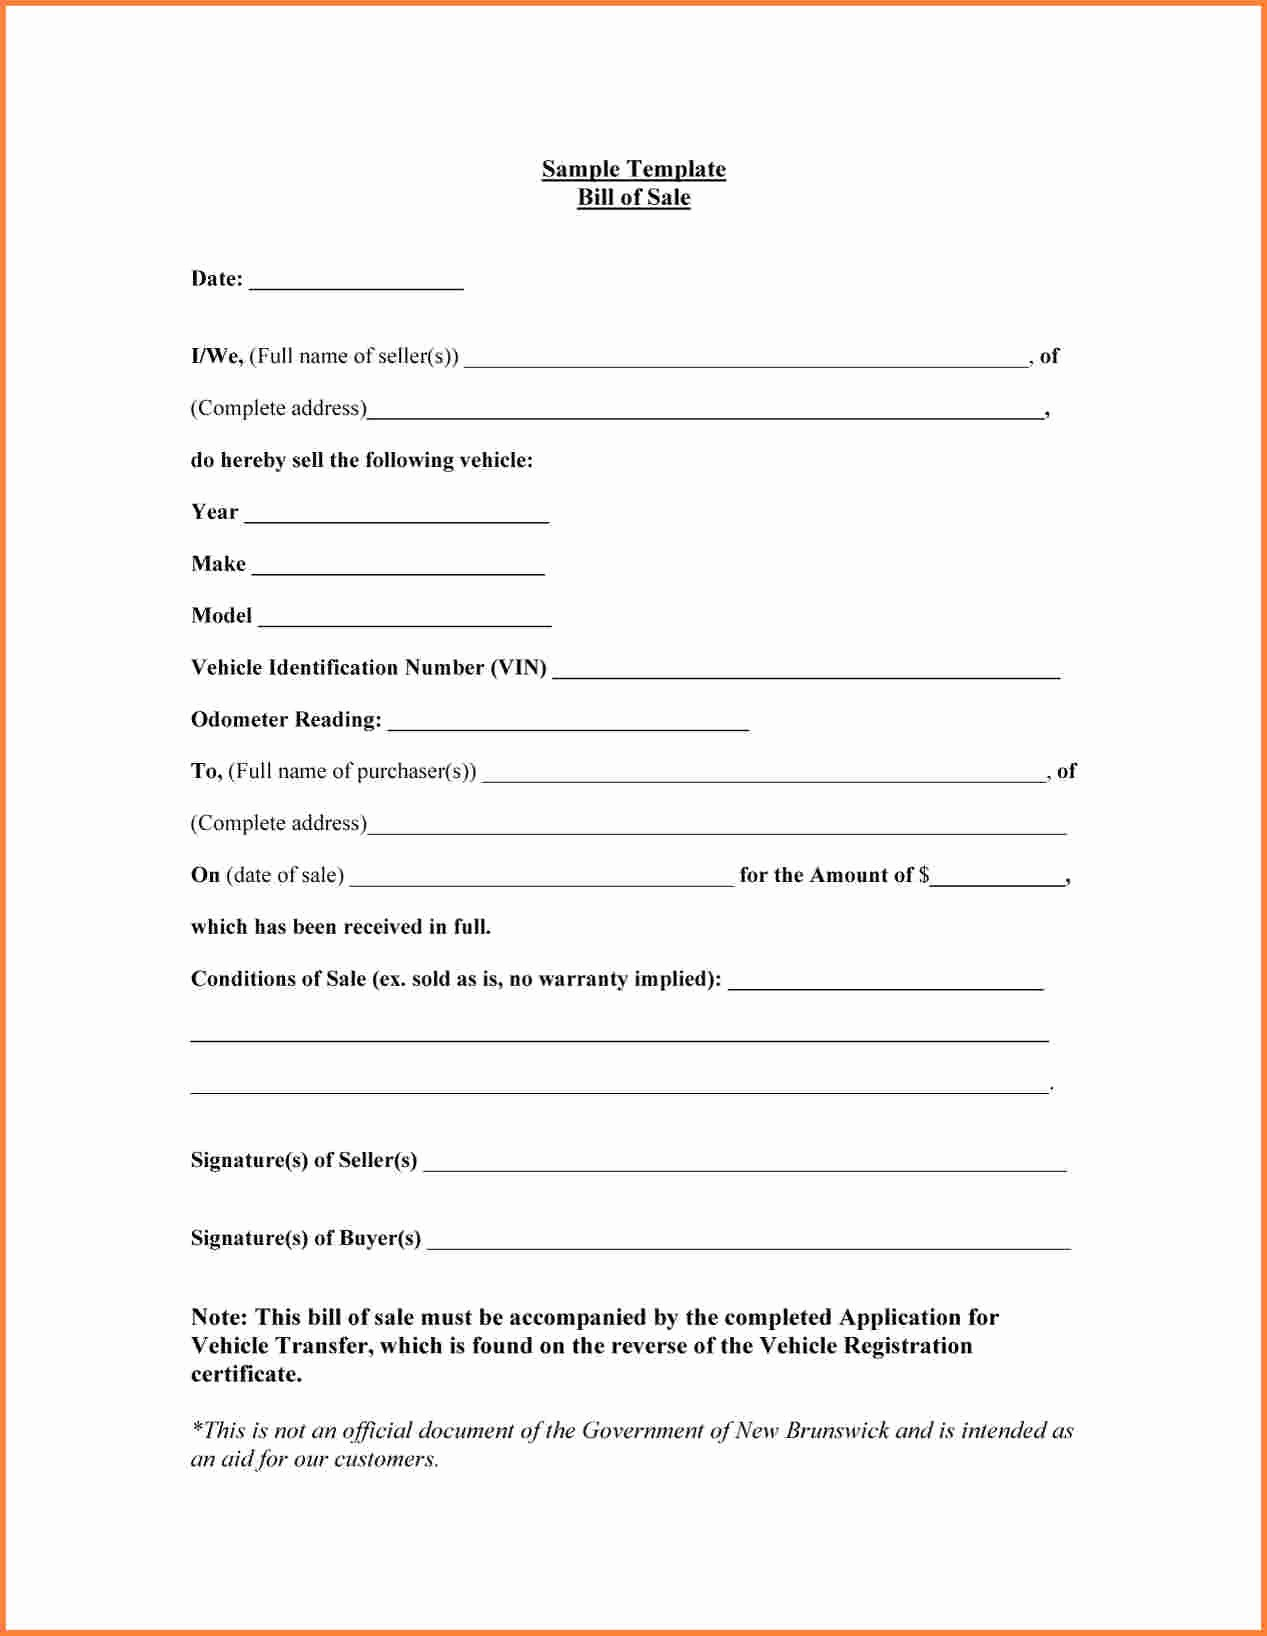 Bill Of Sale Sample Car New Sample Bill Of Sale form for Car Printable